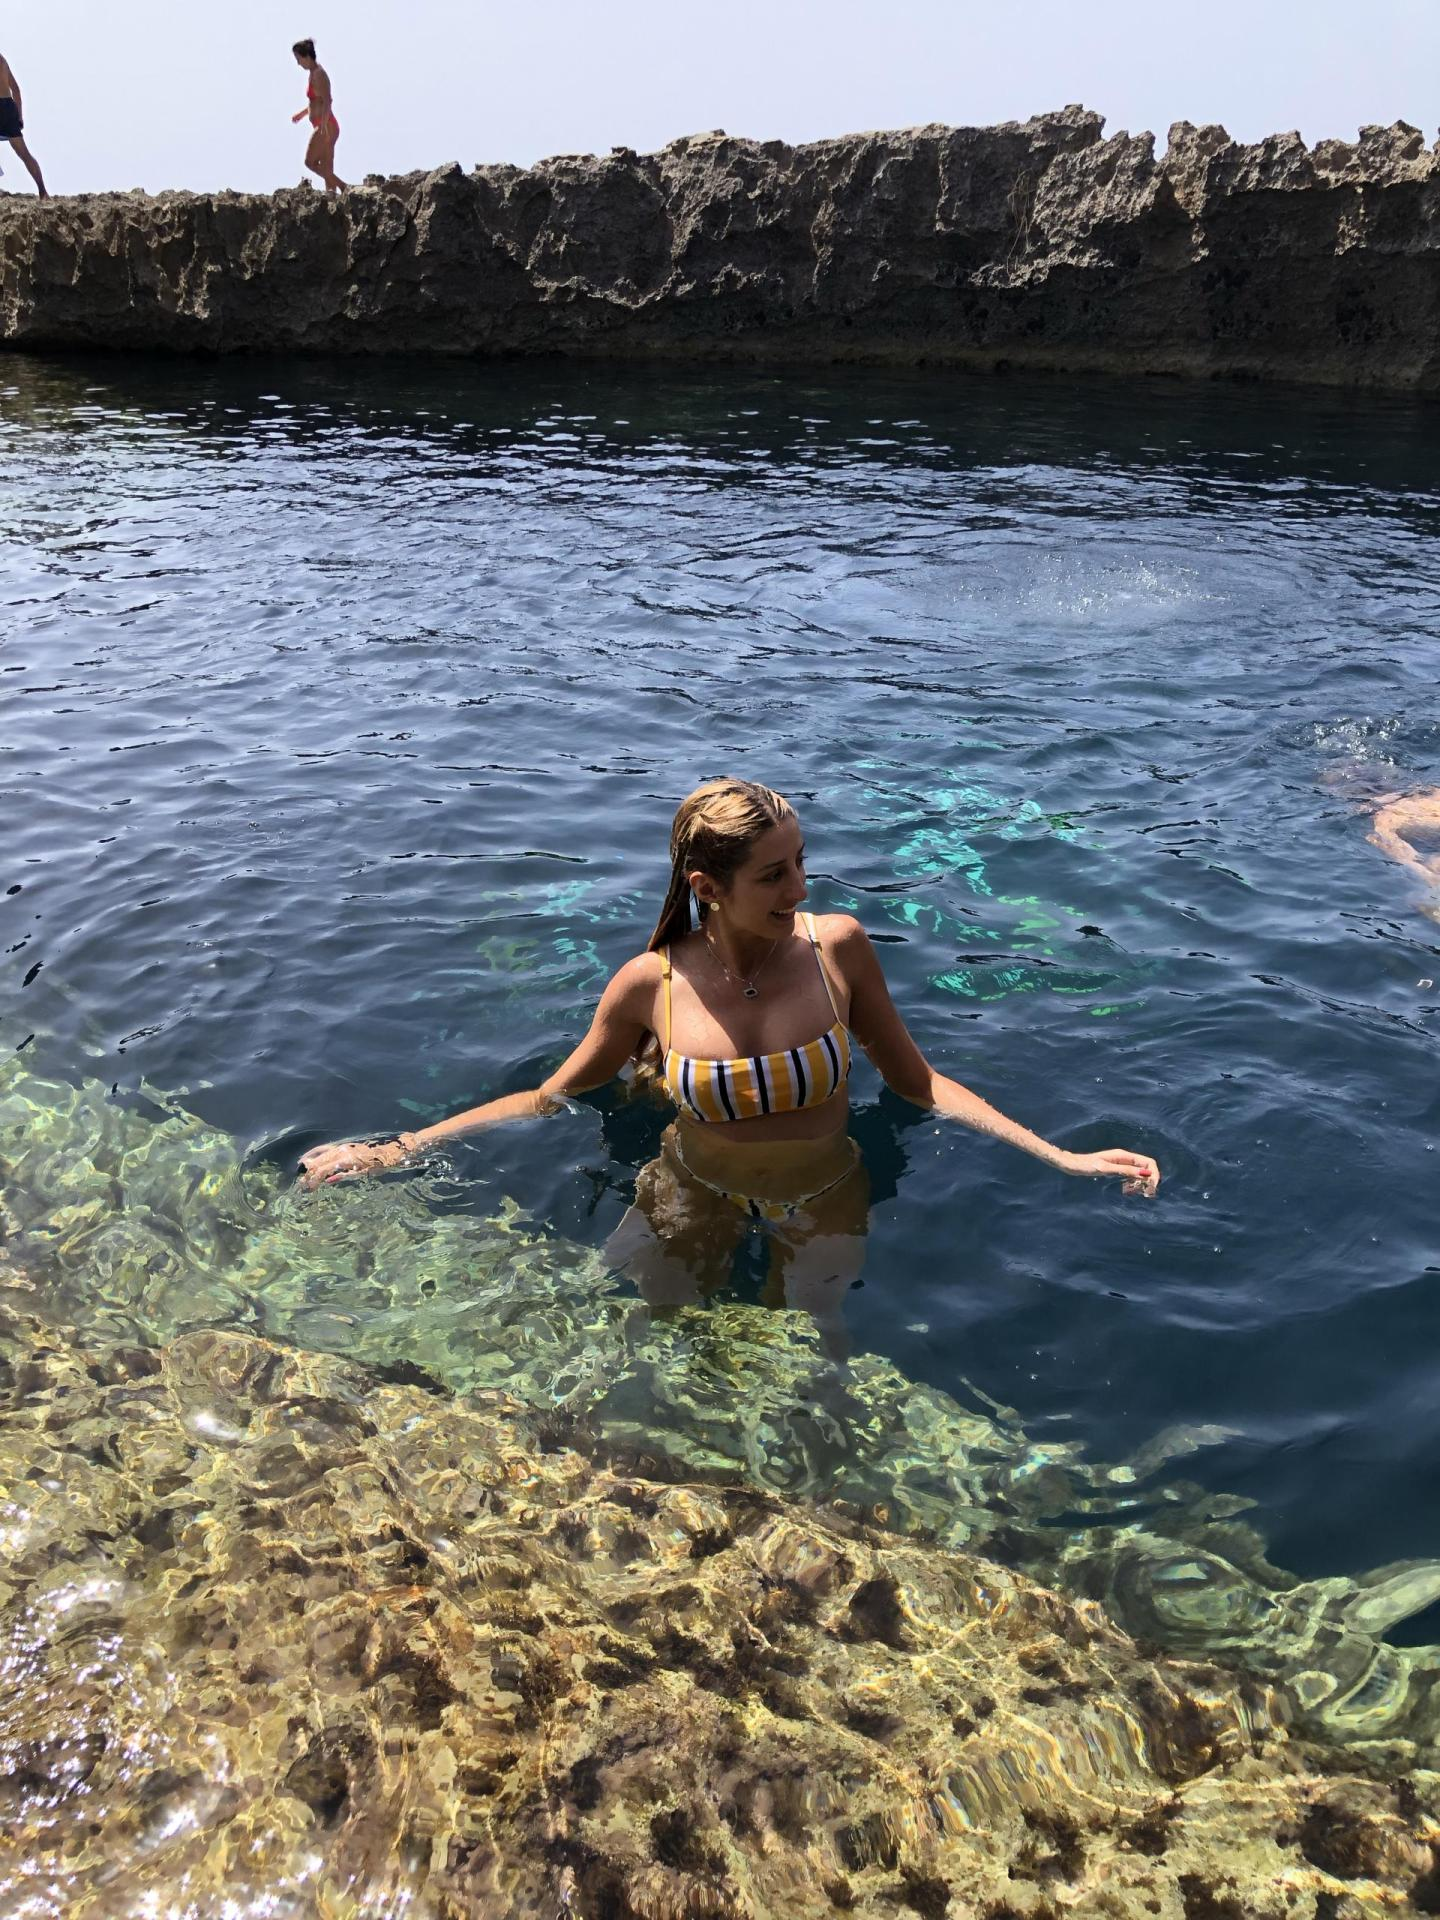 Woman in the water of a natural pool.